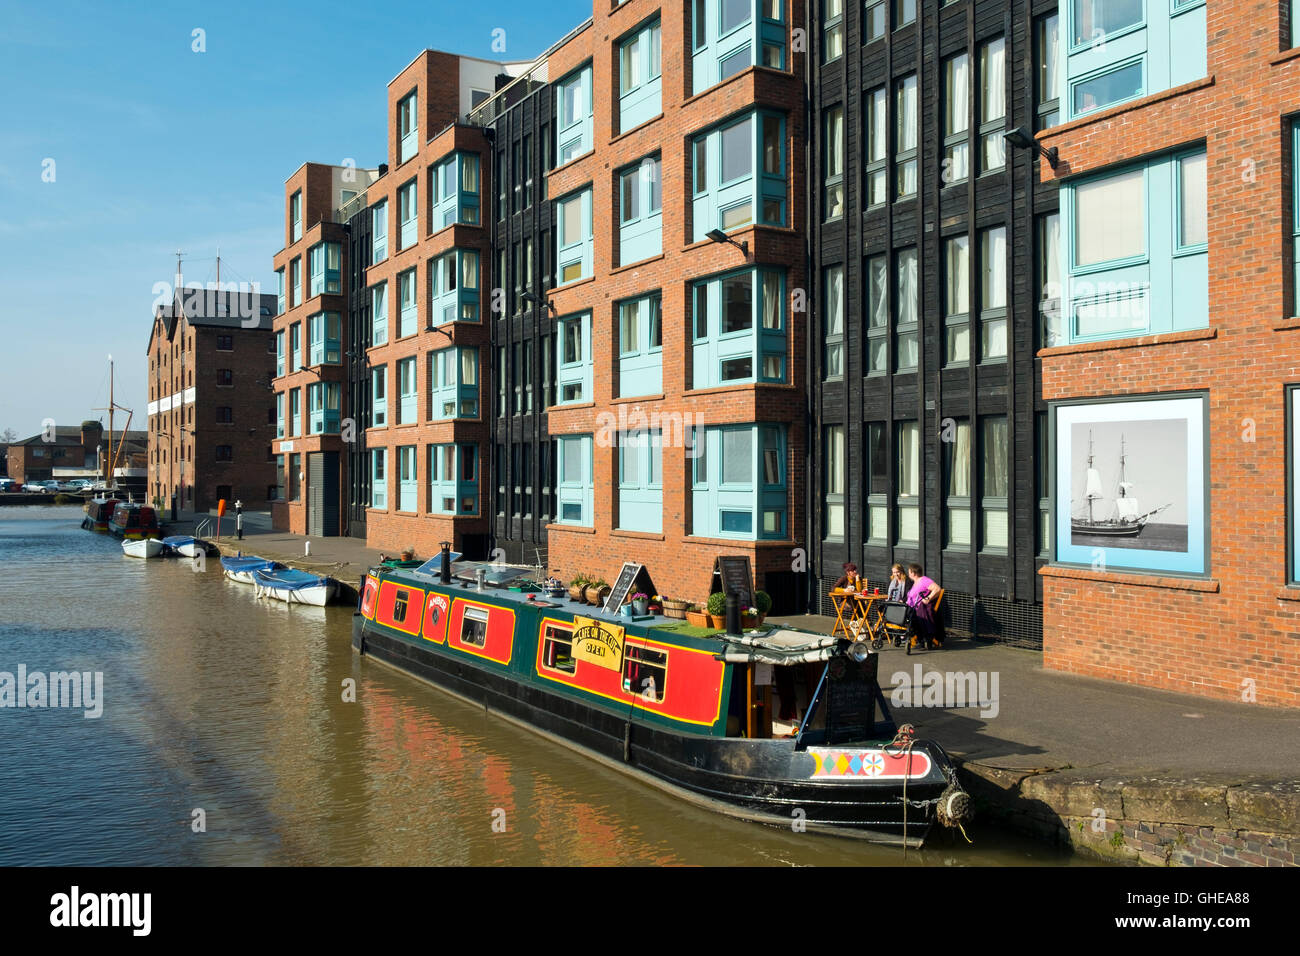 Canal boat cafe moored alongside new build apartments and shops in spring sunshine at Gloucester Docks, Gloucester, UK Stock Photo